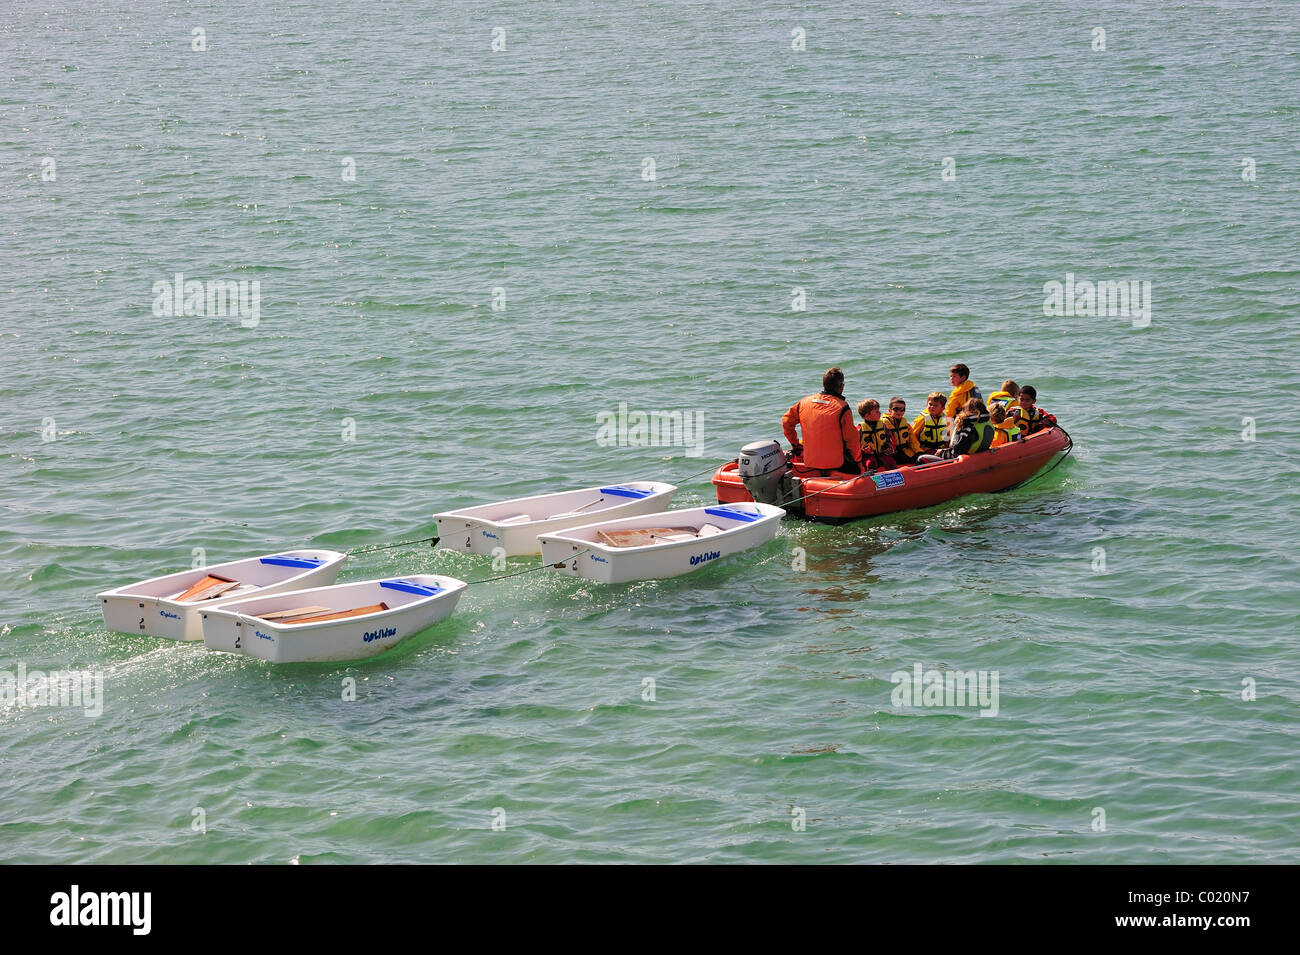 School children with life jackets in dinghy during sailing class - Stock Image